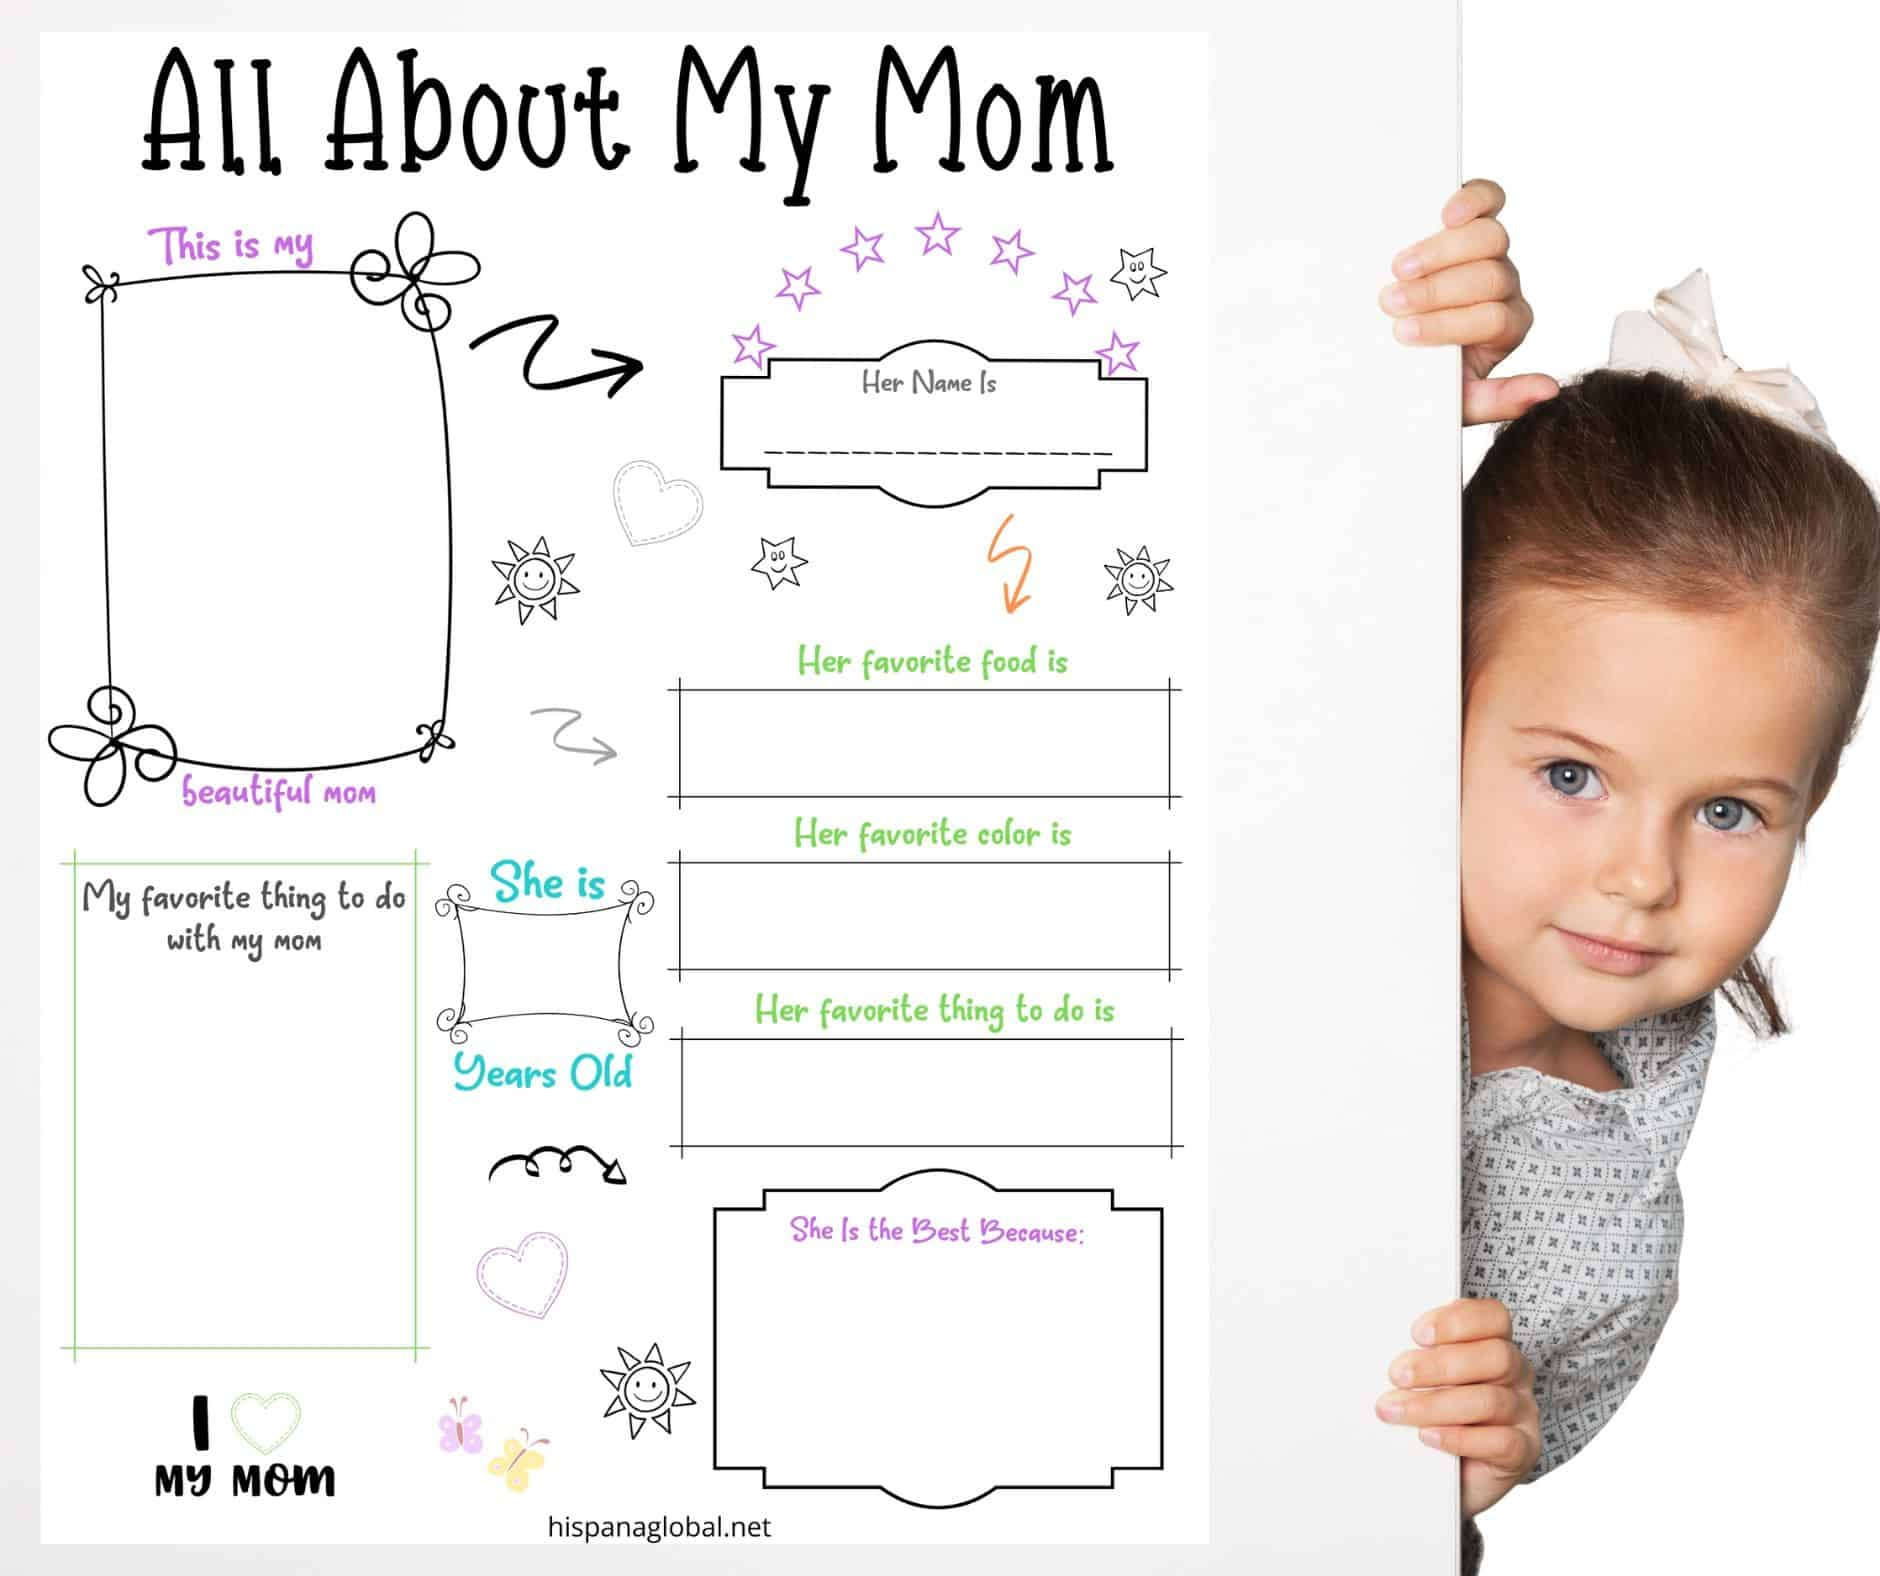 This free Mother's Day activity sheet is not only a cute printable, but it will also melt Mom's heart once kids fill it out.